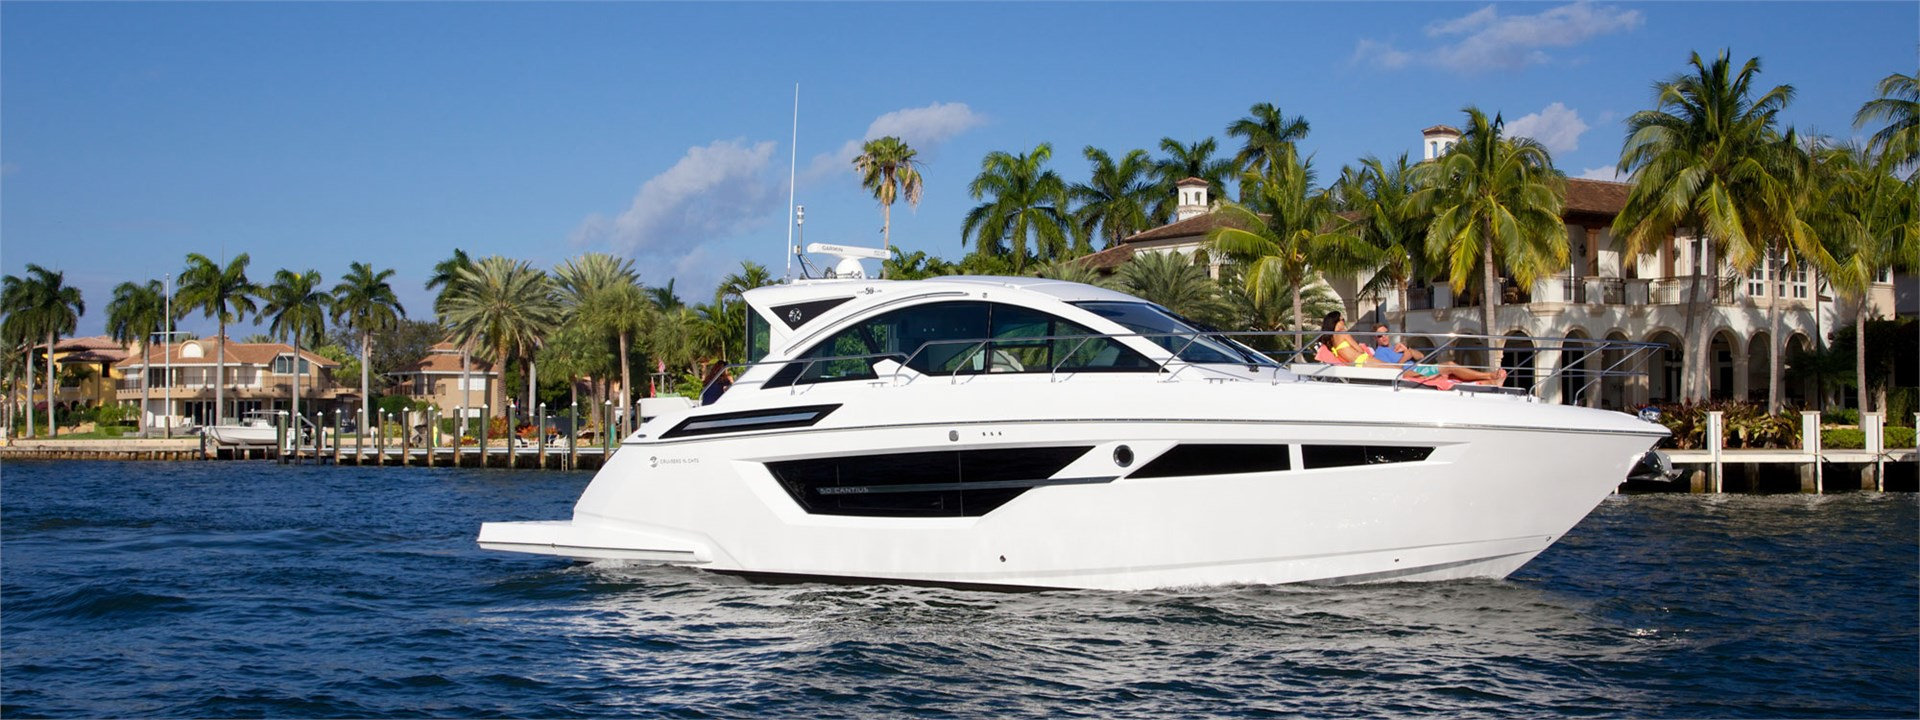 Water Shot for a Cruiser Yachts 50 Cantius